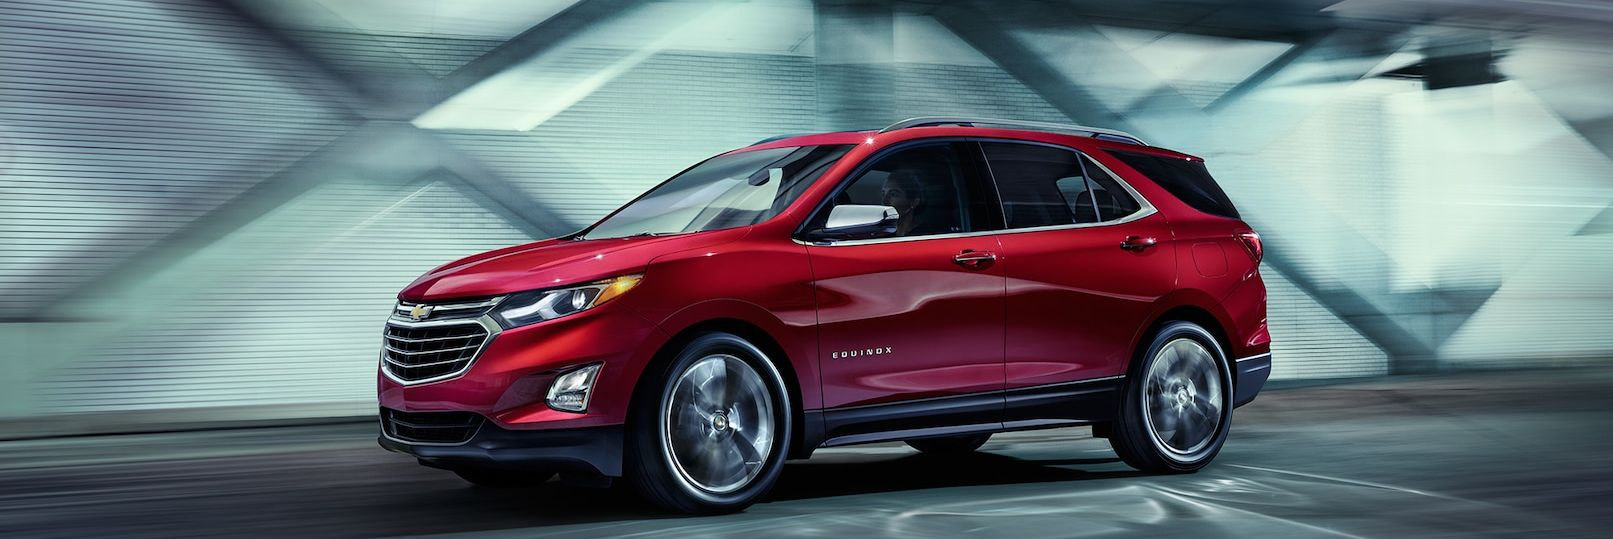 2019 Chevrolet Equinox Leasing near Grand Blanc, MI